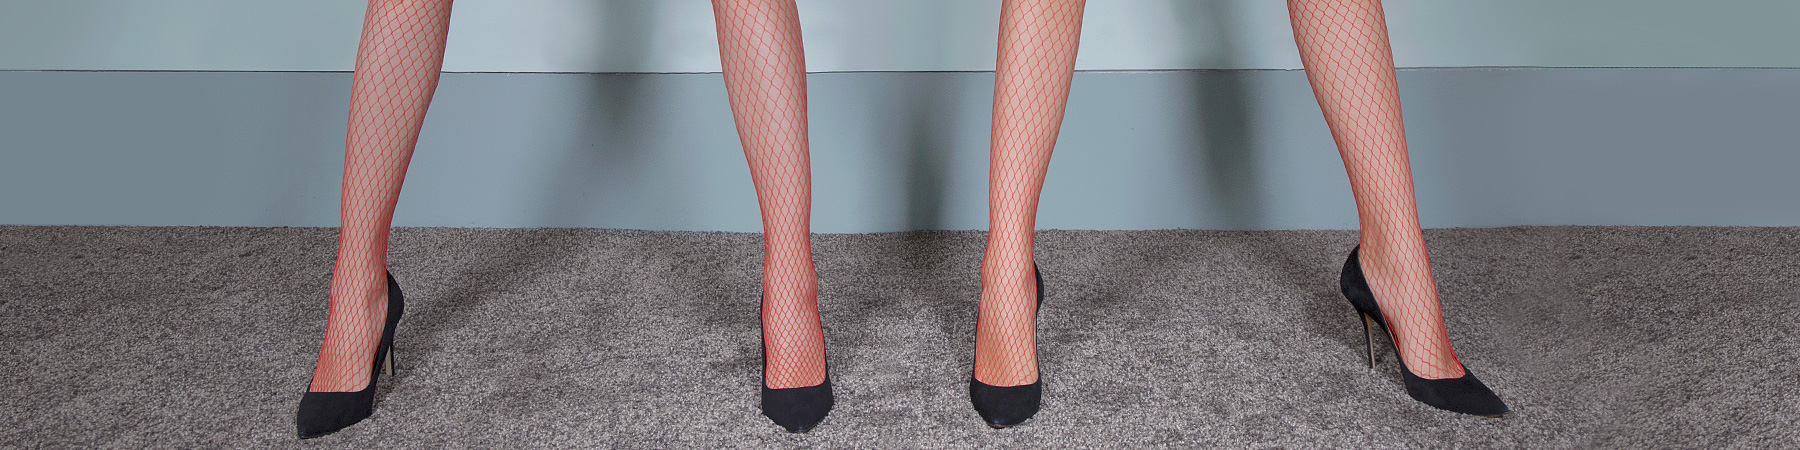 Tights & Hosiery